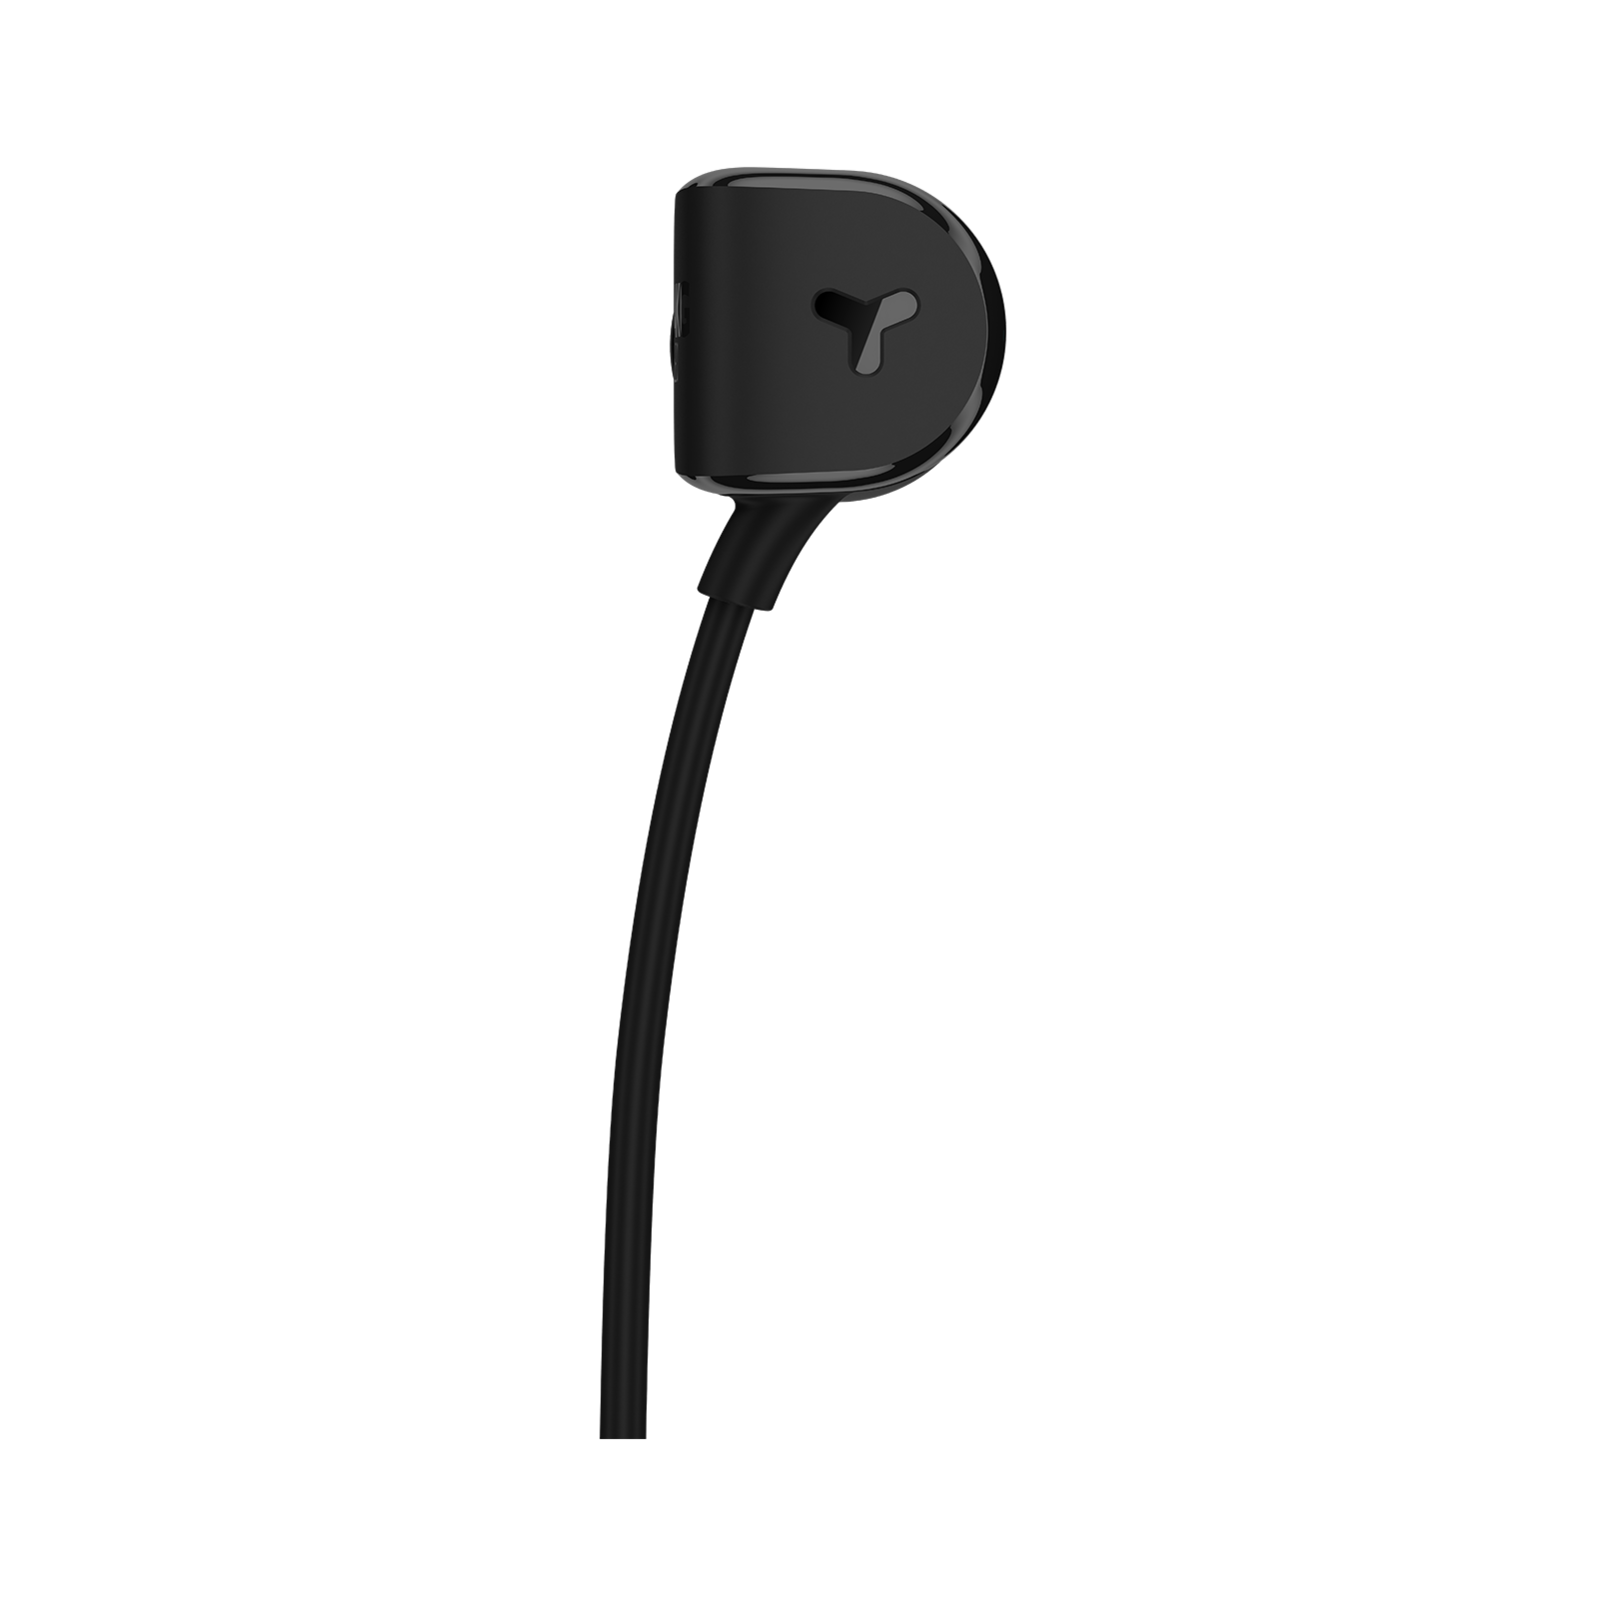 Y20U - Black - Signature AKG in-ear stereo headphone that takes your calls - Back